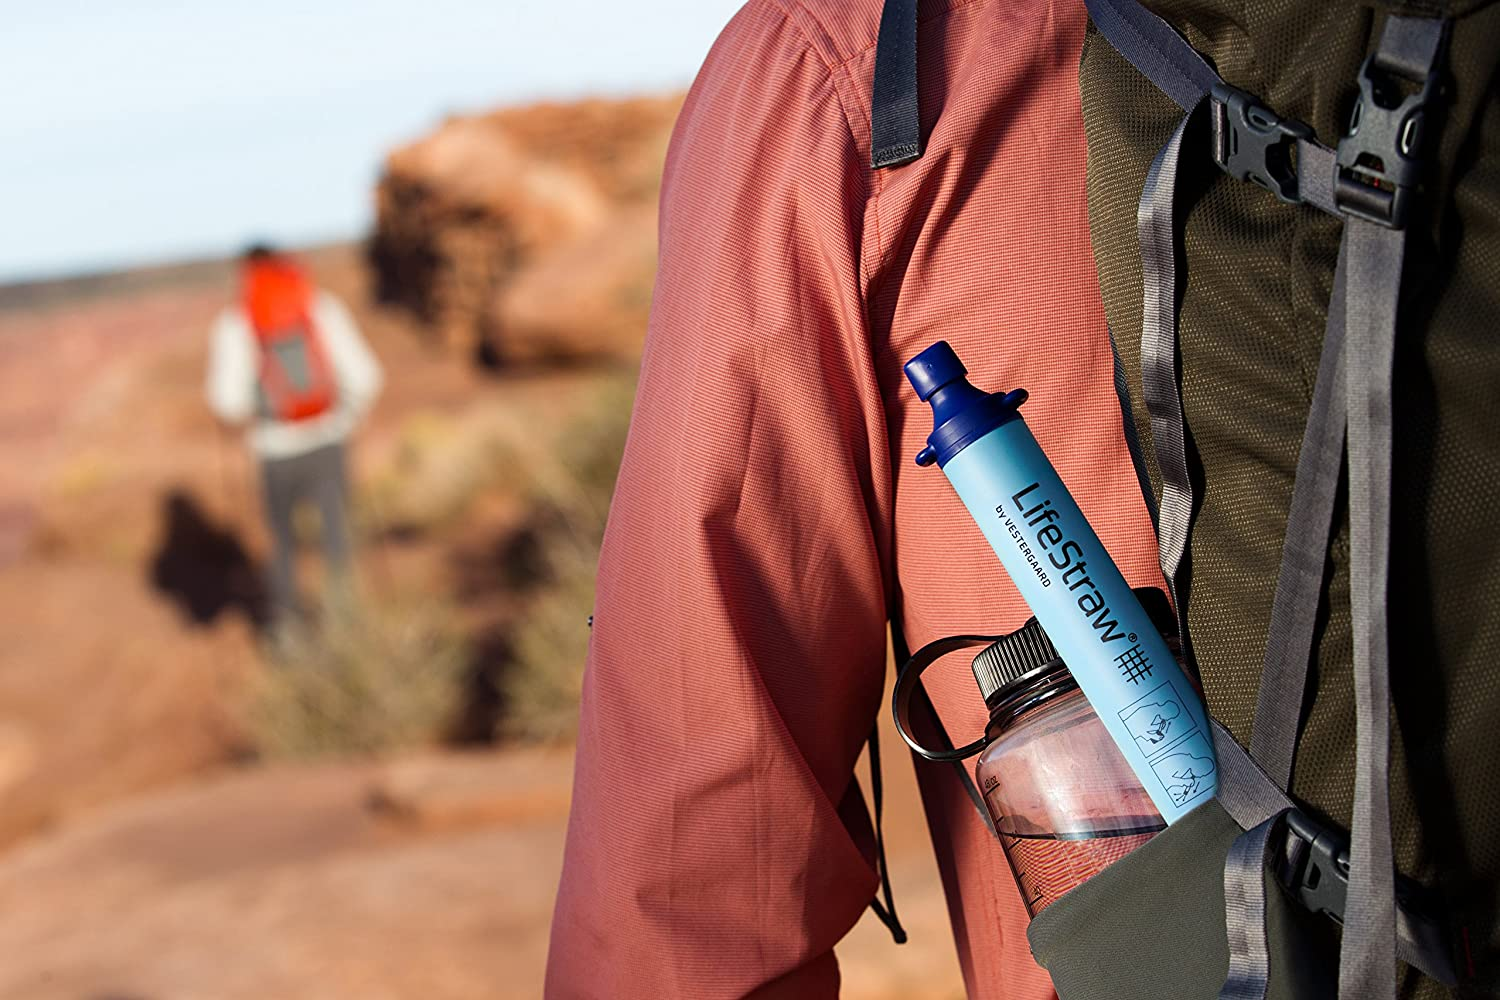 Travel and Emergency Camping 2Pack-LifeStraw Personal Water Filter for Hiking